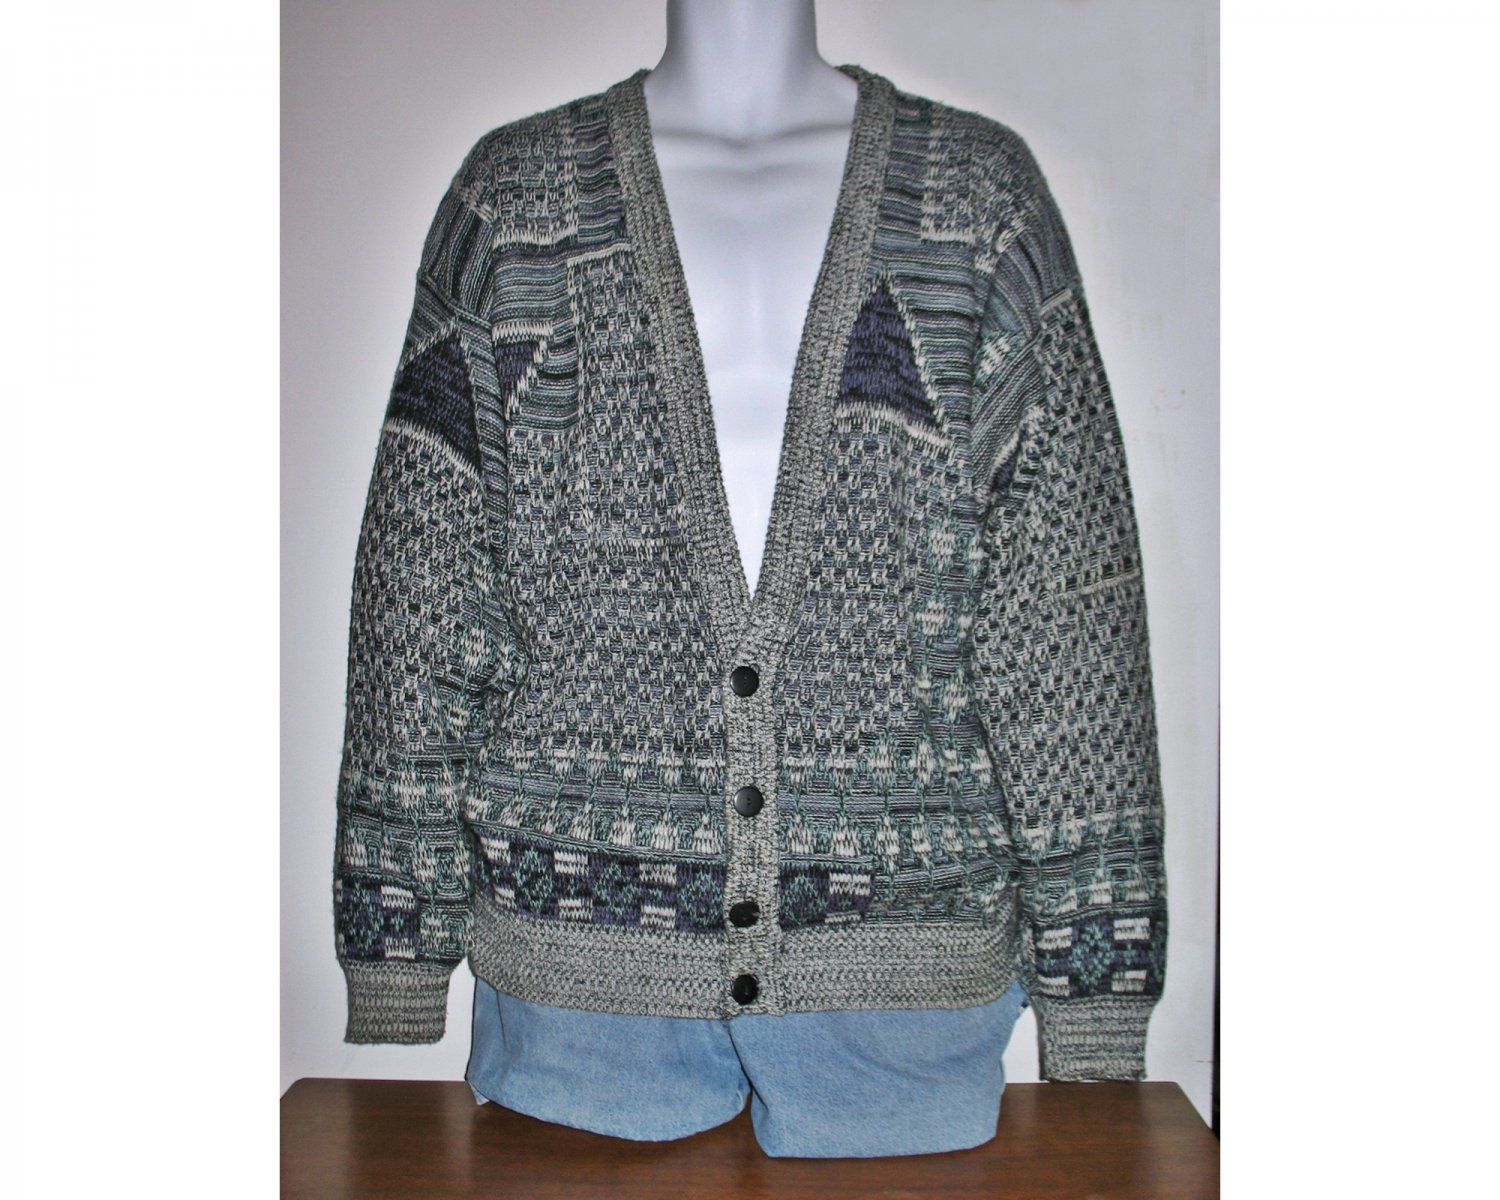 Vintage 70s Cardigan with Abstract Artsy Design in Aqua/Grey /Purple/Black Unisex - Size Large